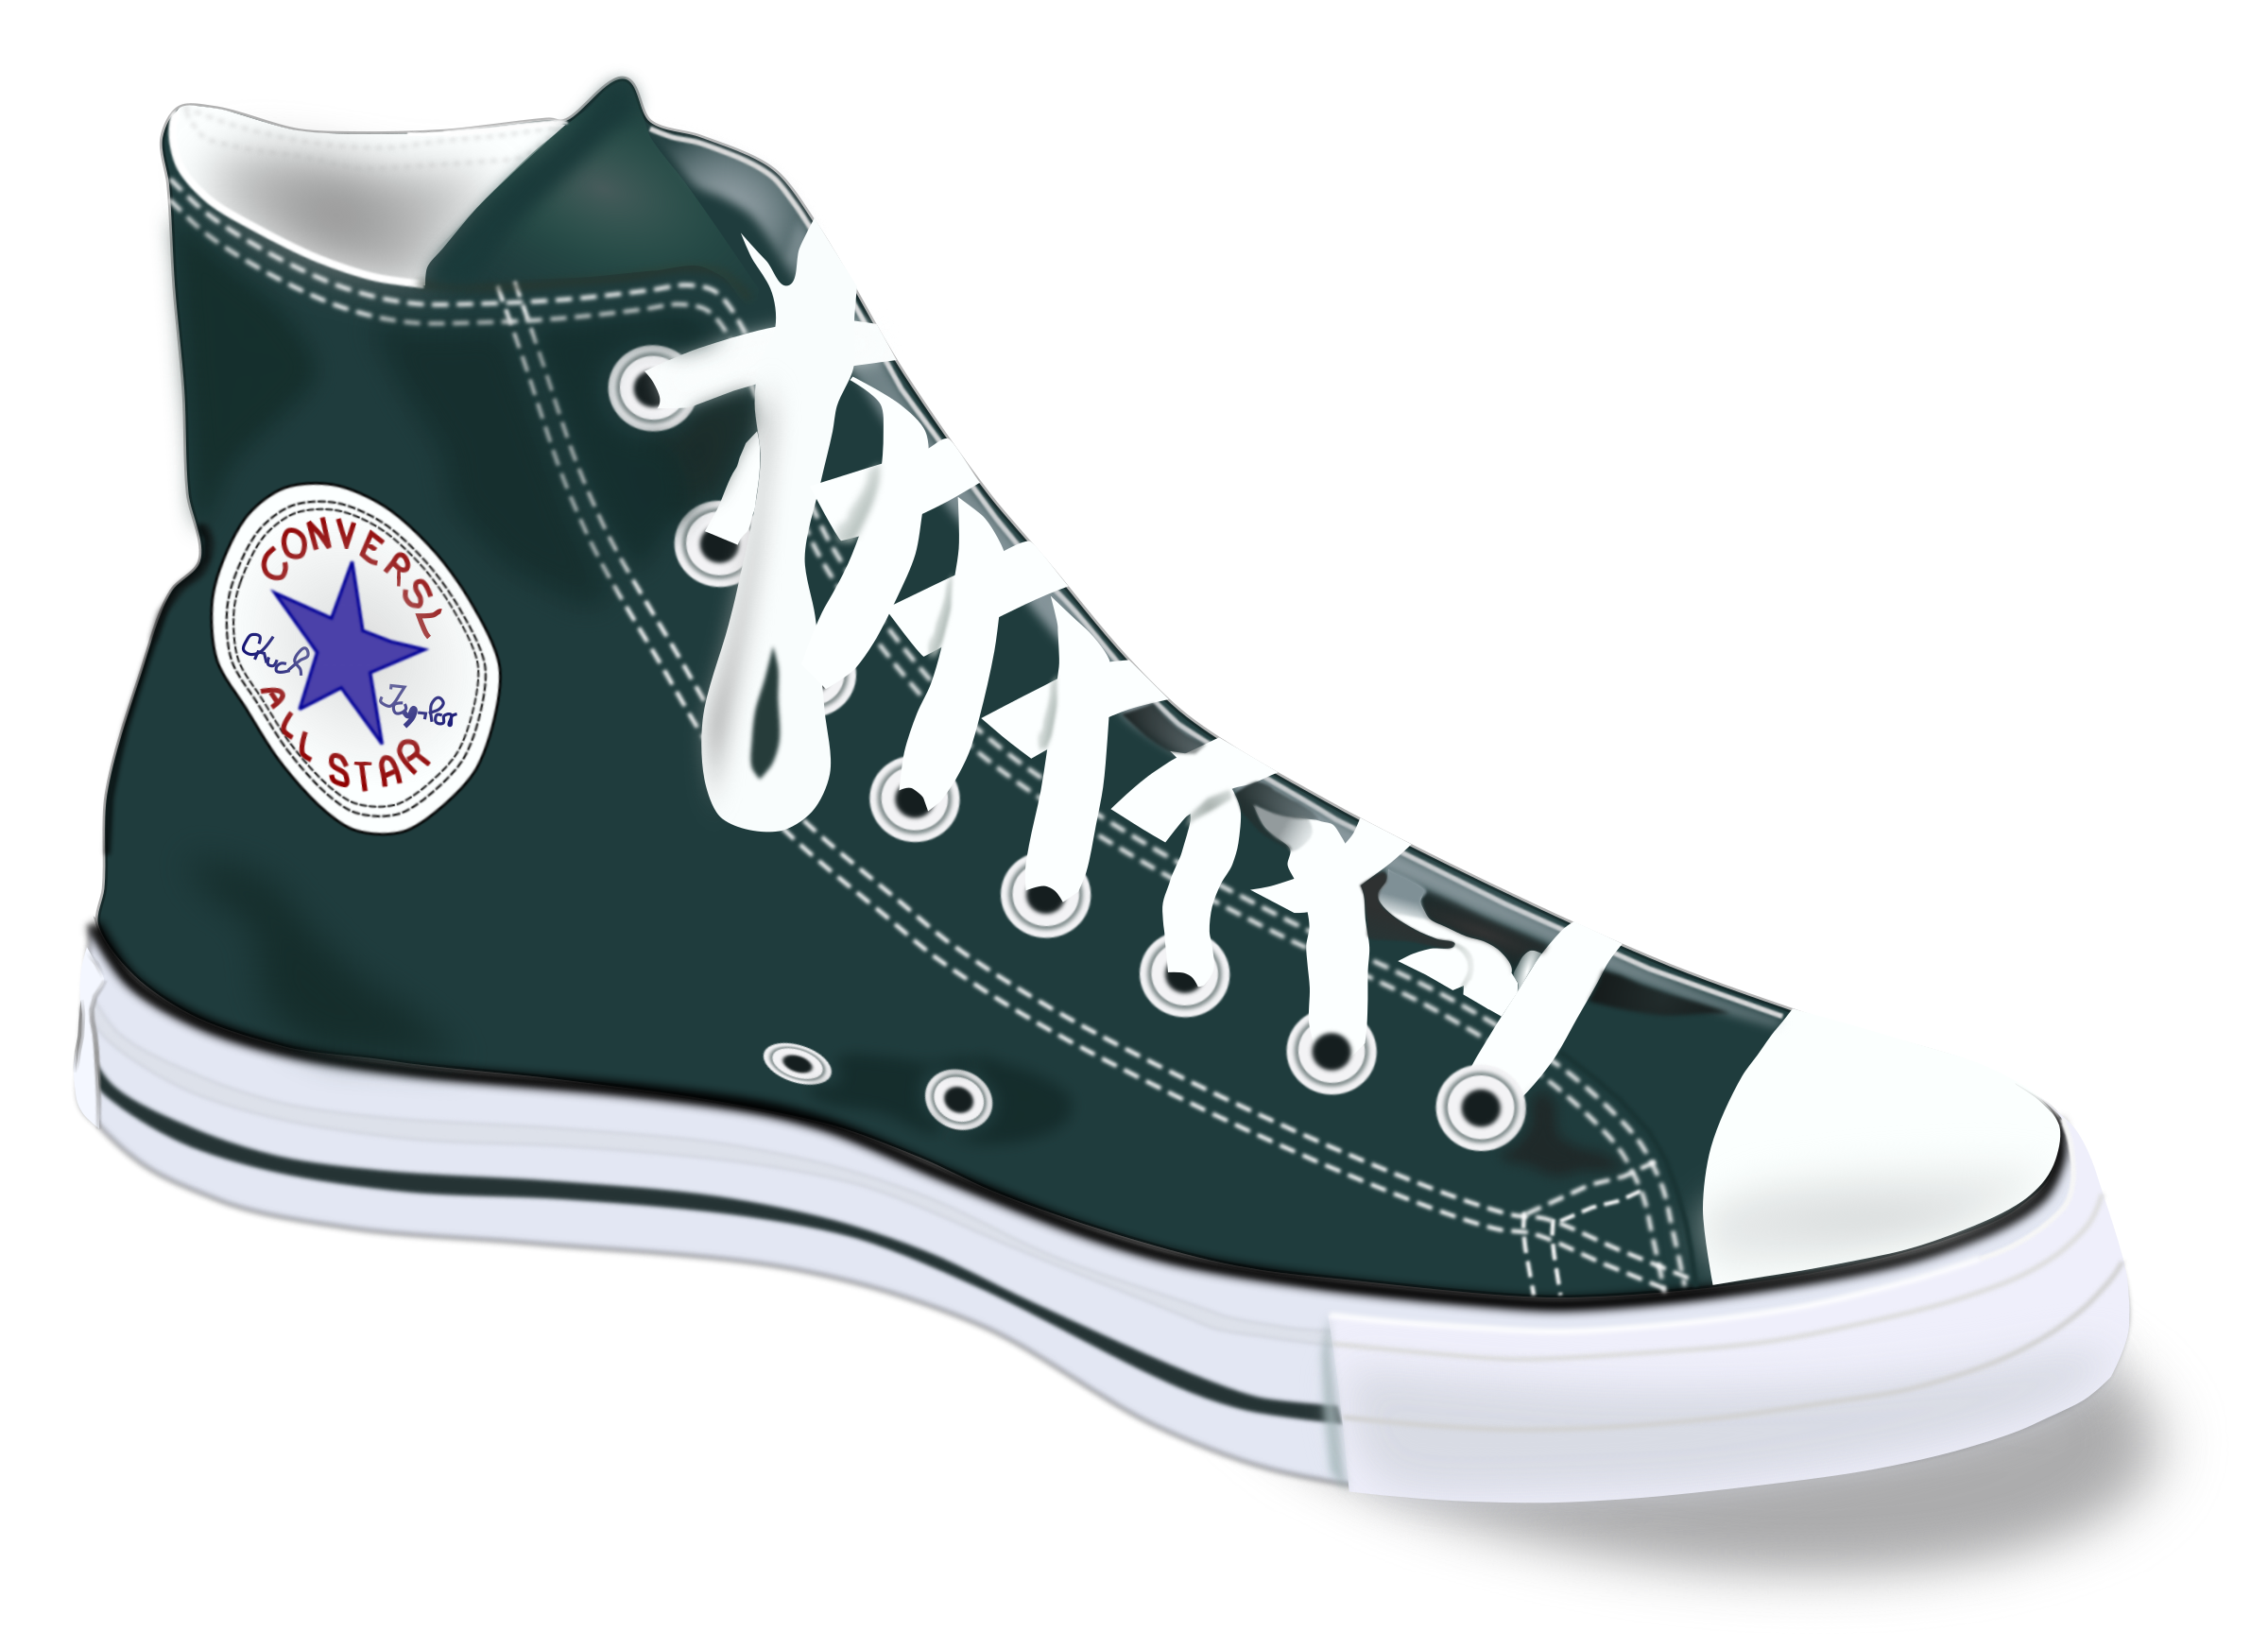 Conversl Chucks by marauder